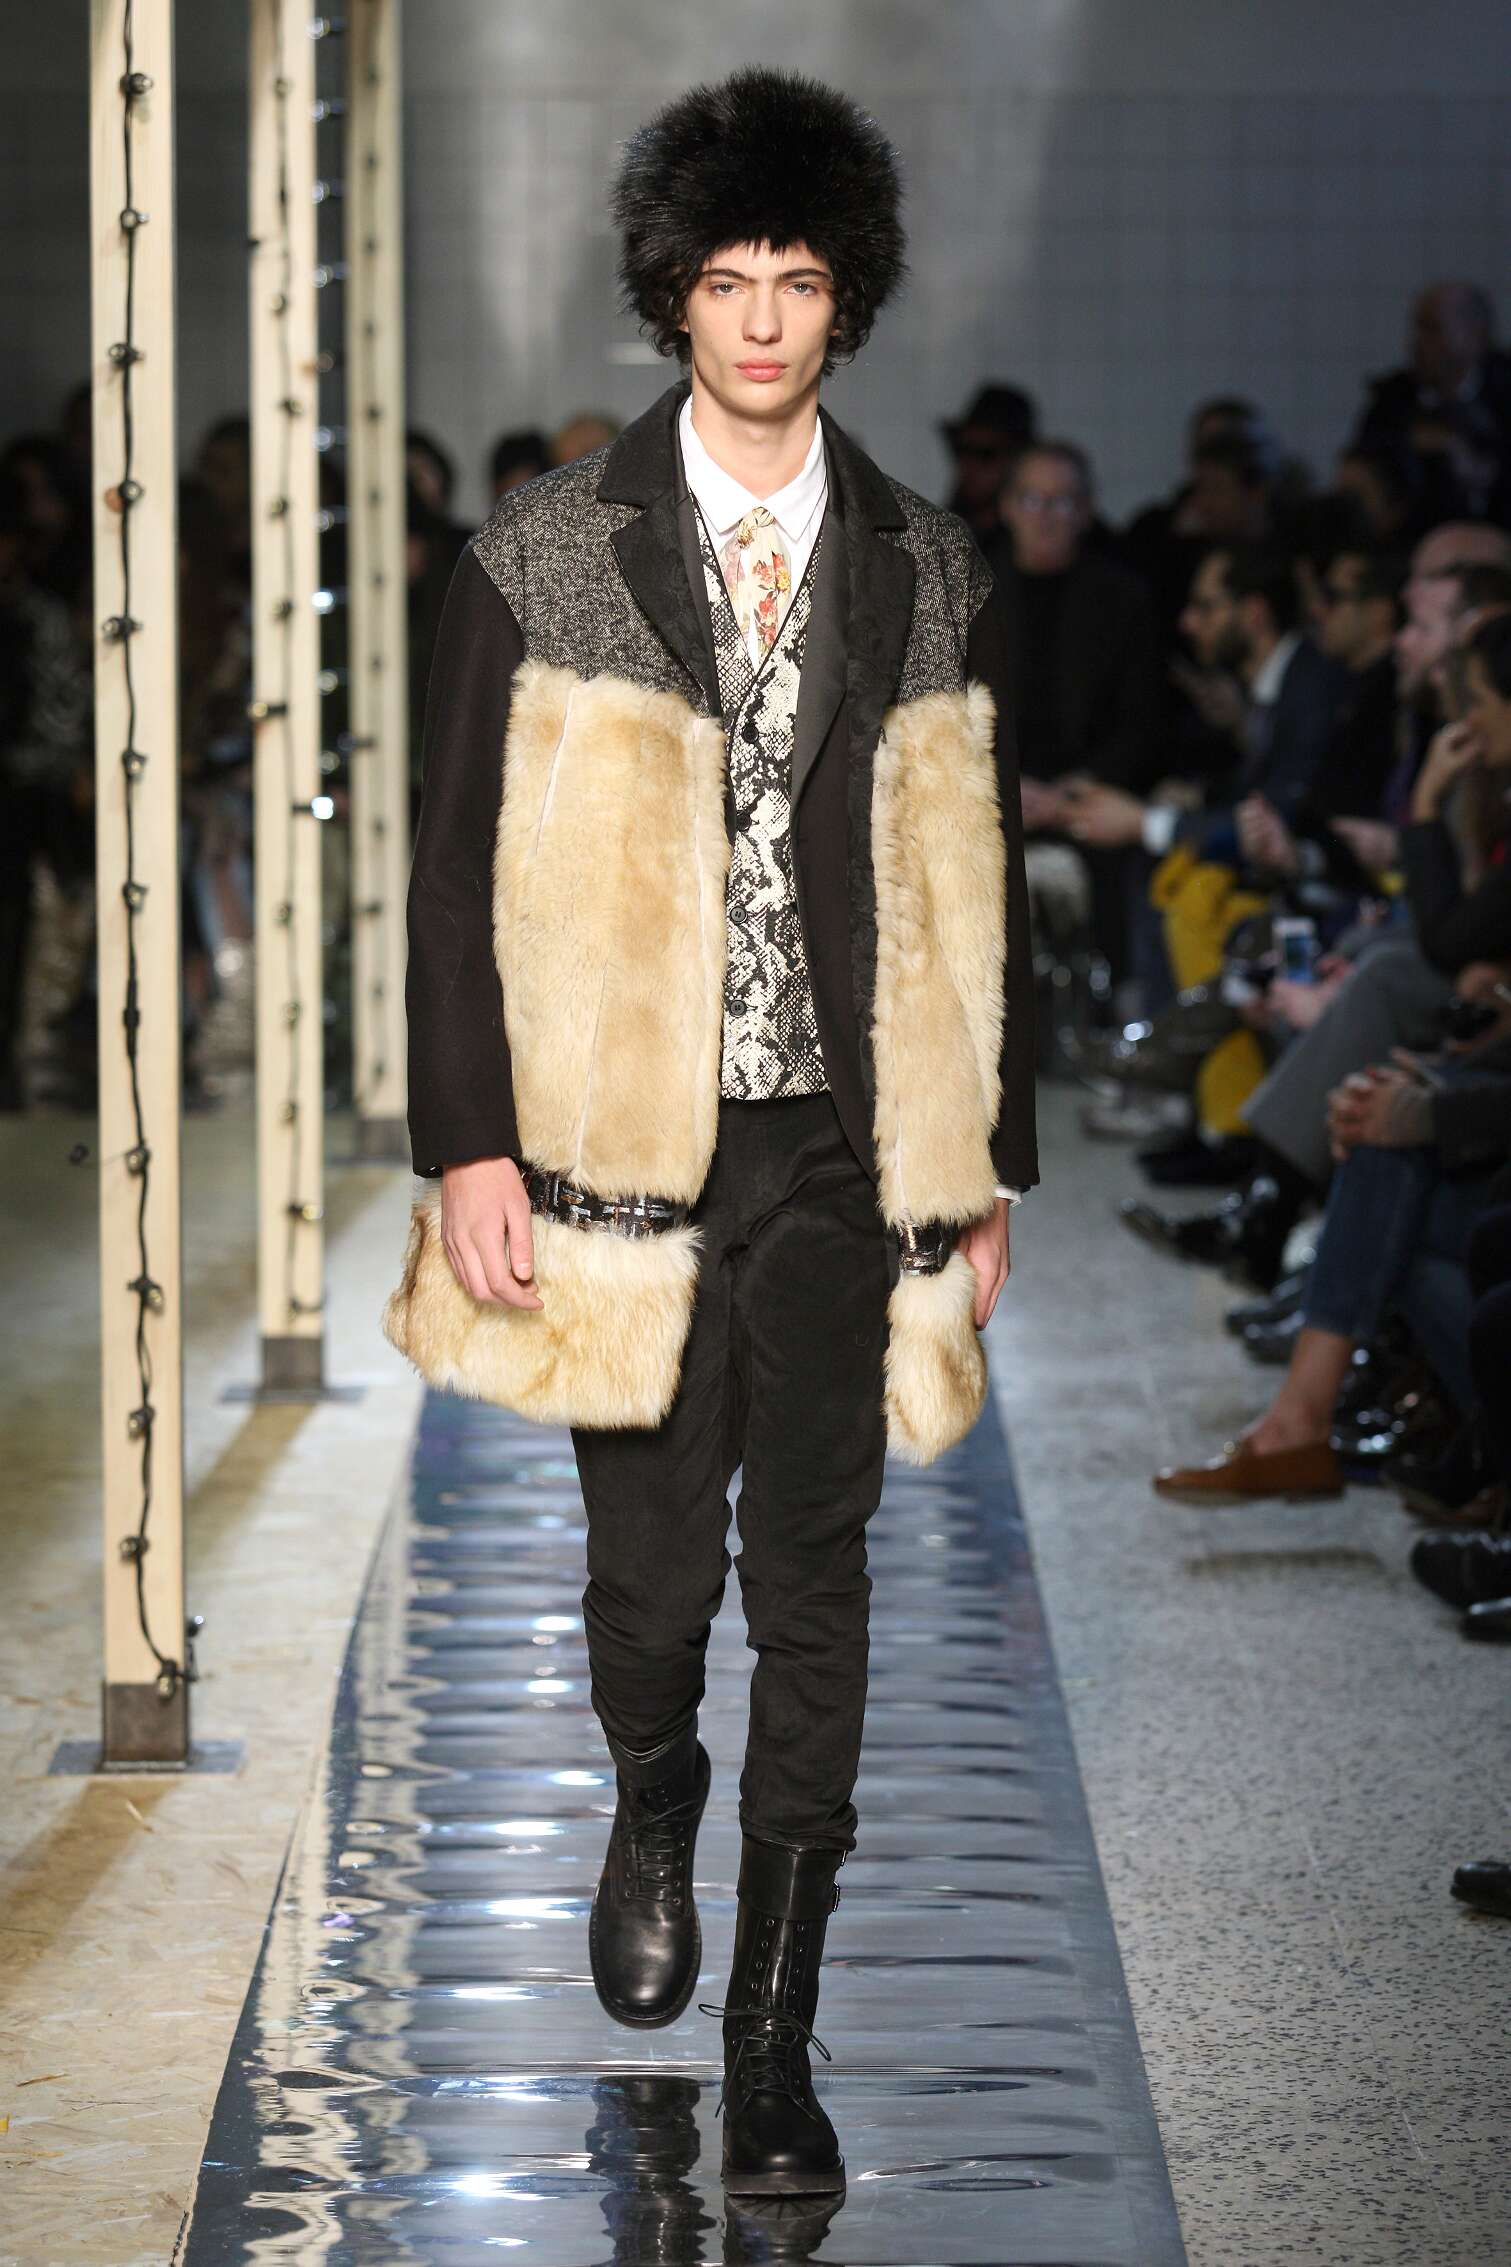 Antonio Marras Fall Winter 2016 Milan